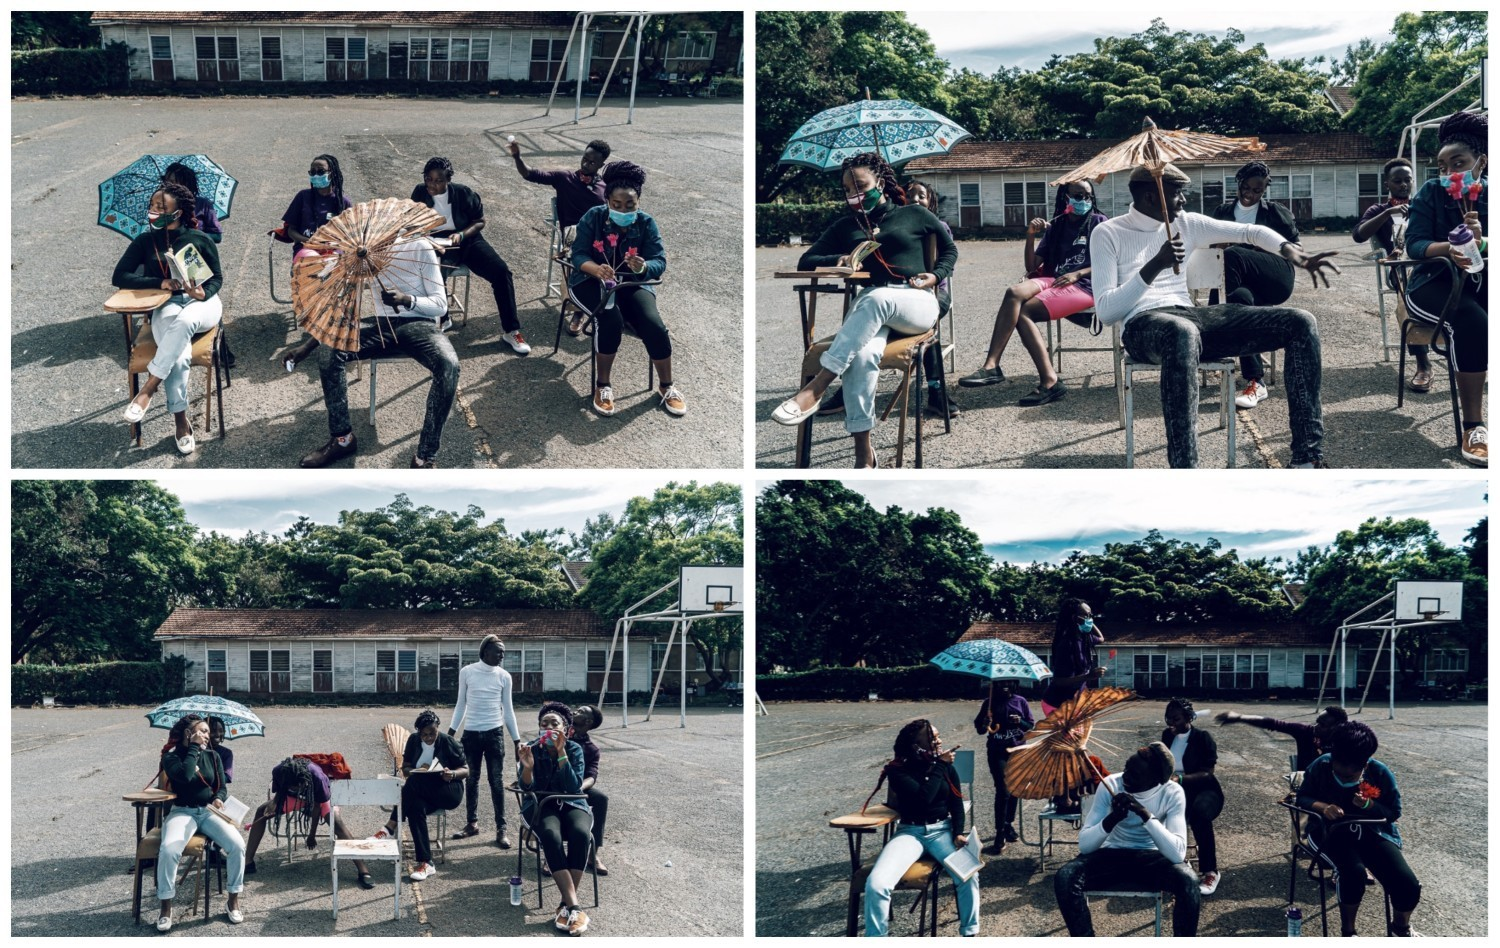 Set of 4 pics, showing students sitting on chairs outdoors, two holding umbrellas, one reading, others chatting.